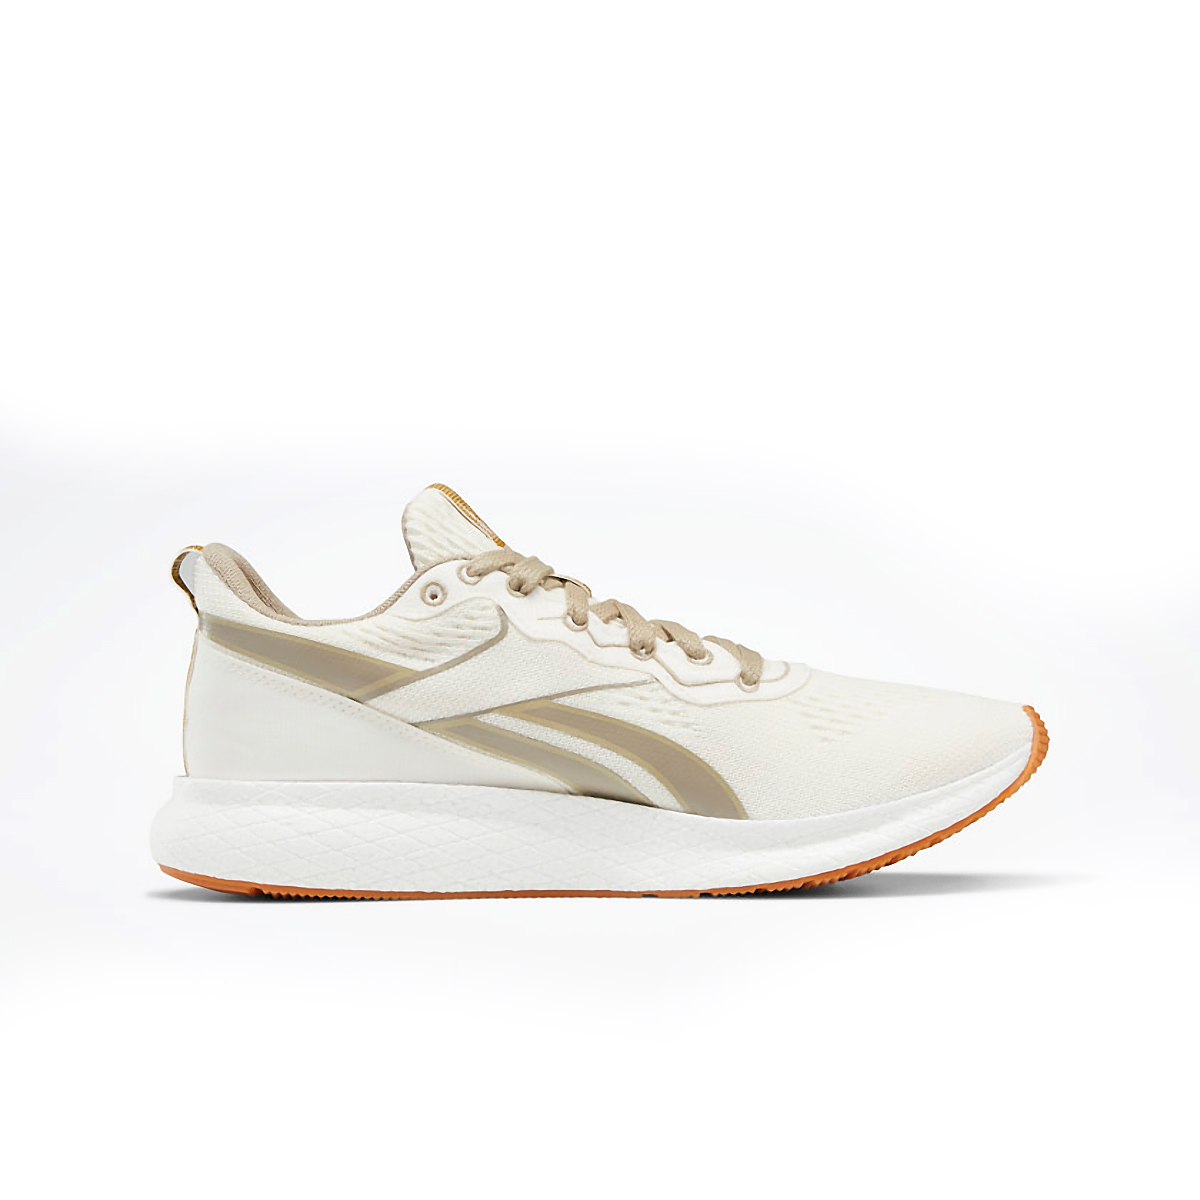 Women's Reebok Forever Floatride Grow Running Shoe - Color: Classic White/Straw/Super Neutral - Size: 5 - Width: Regular, Classic White/Straw/Super Neutral, large, image 2